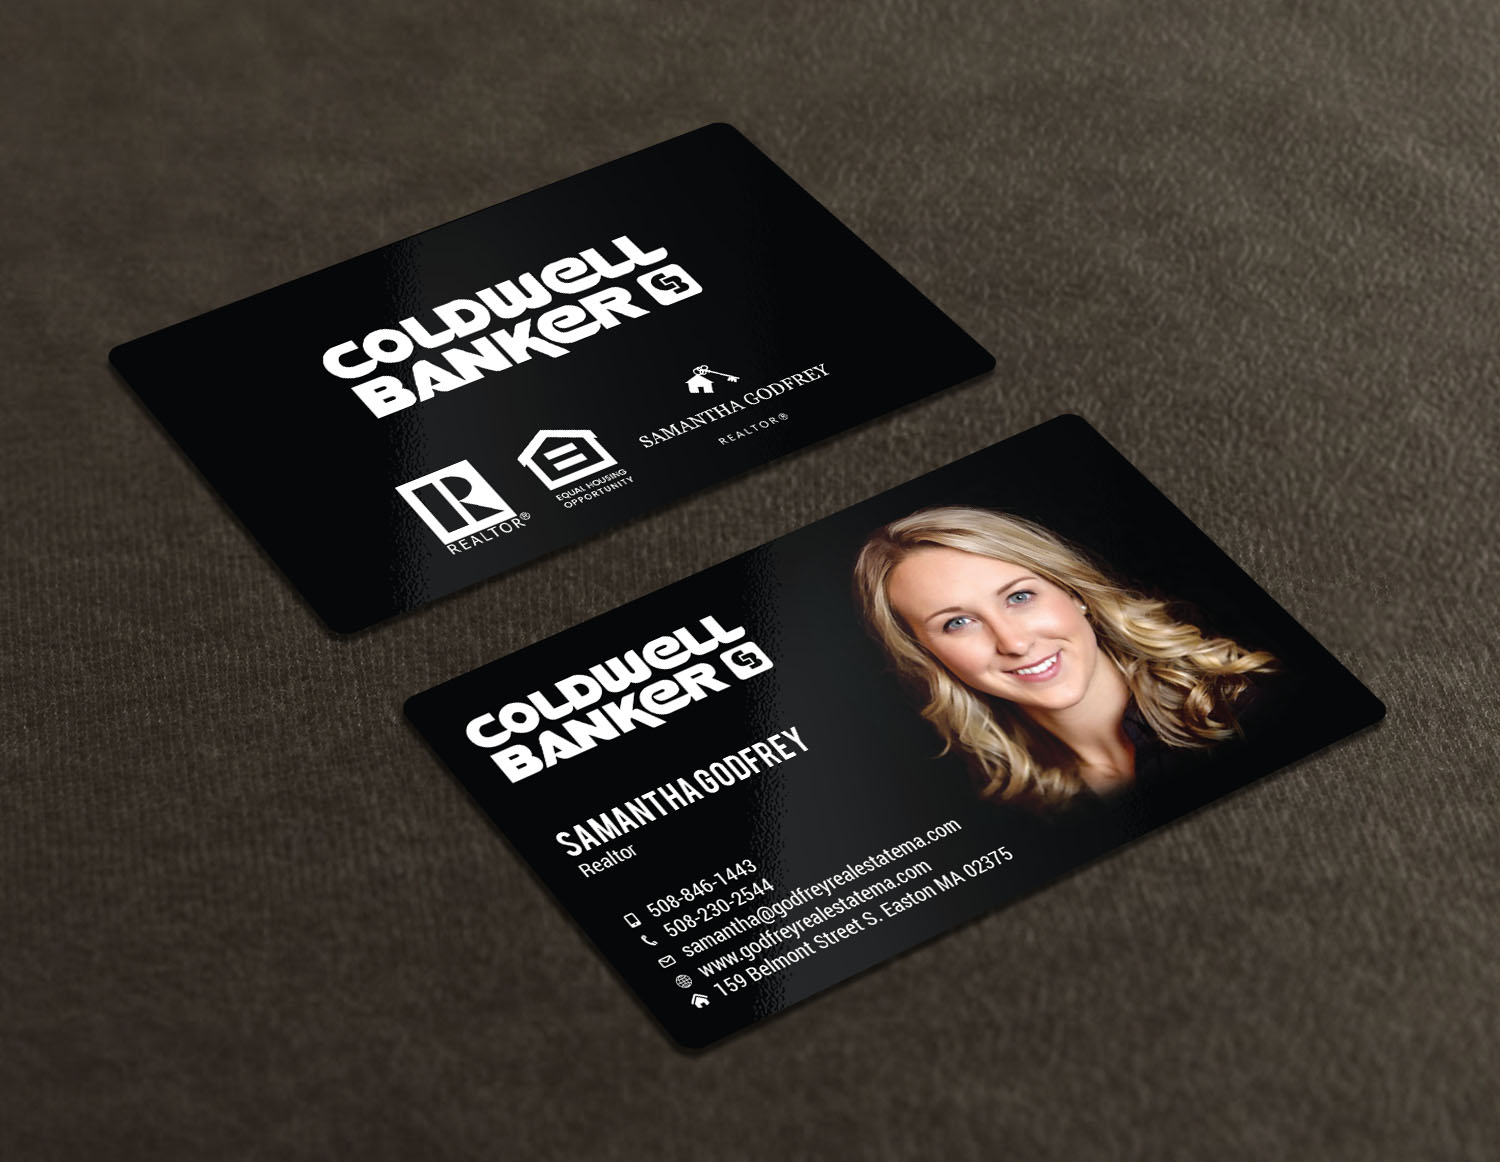 Modern professional real estate agent business card design for business card design by avanger000 for godfrey auto inc design 17847966 colourmoves